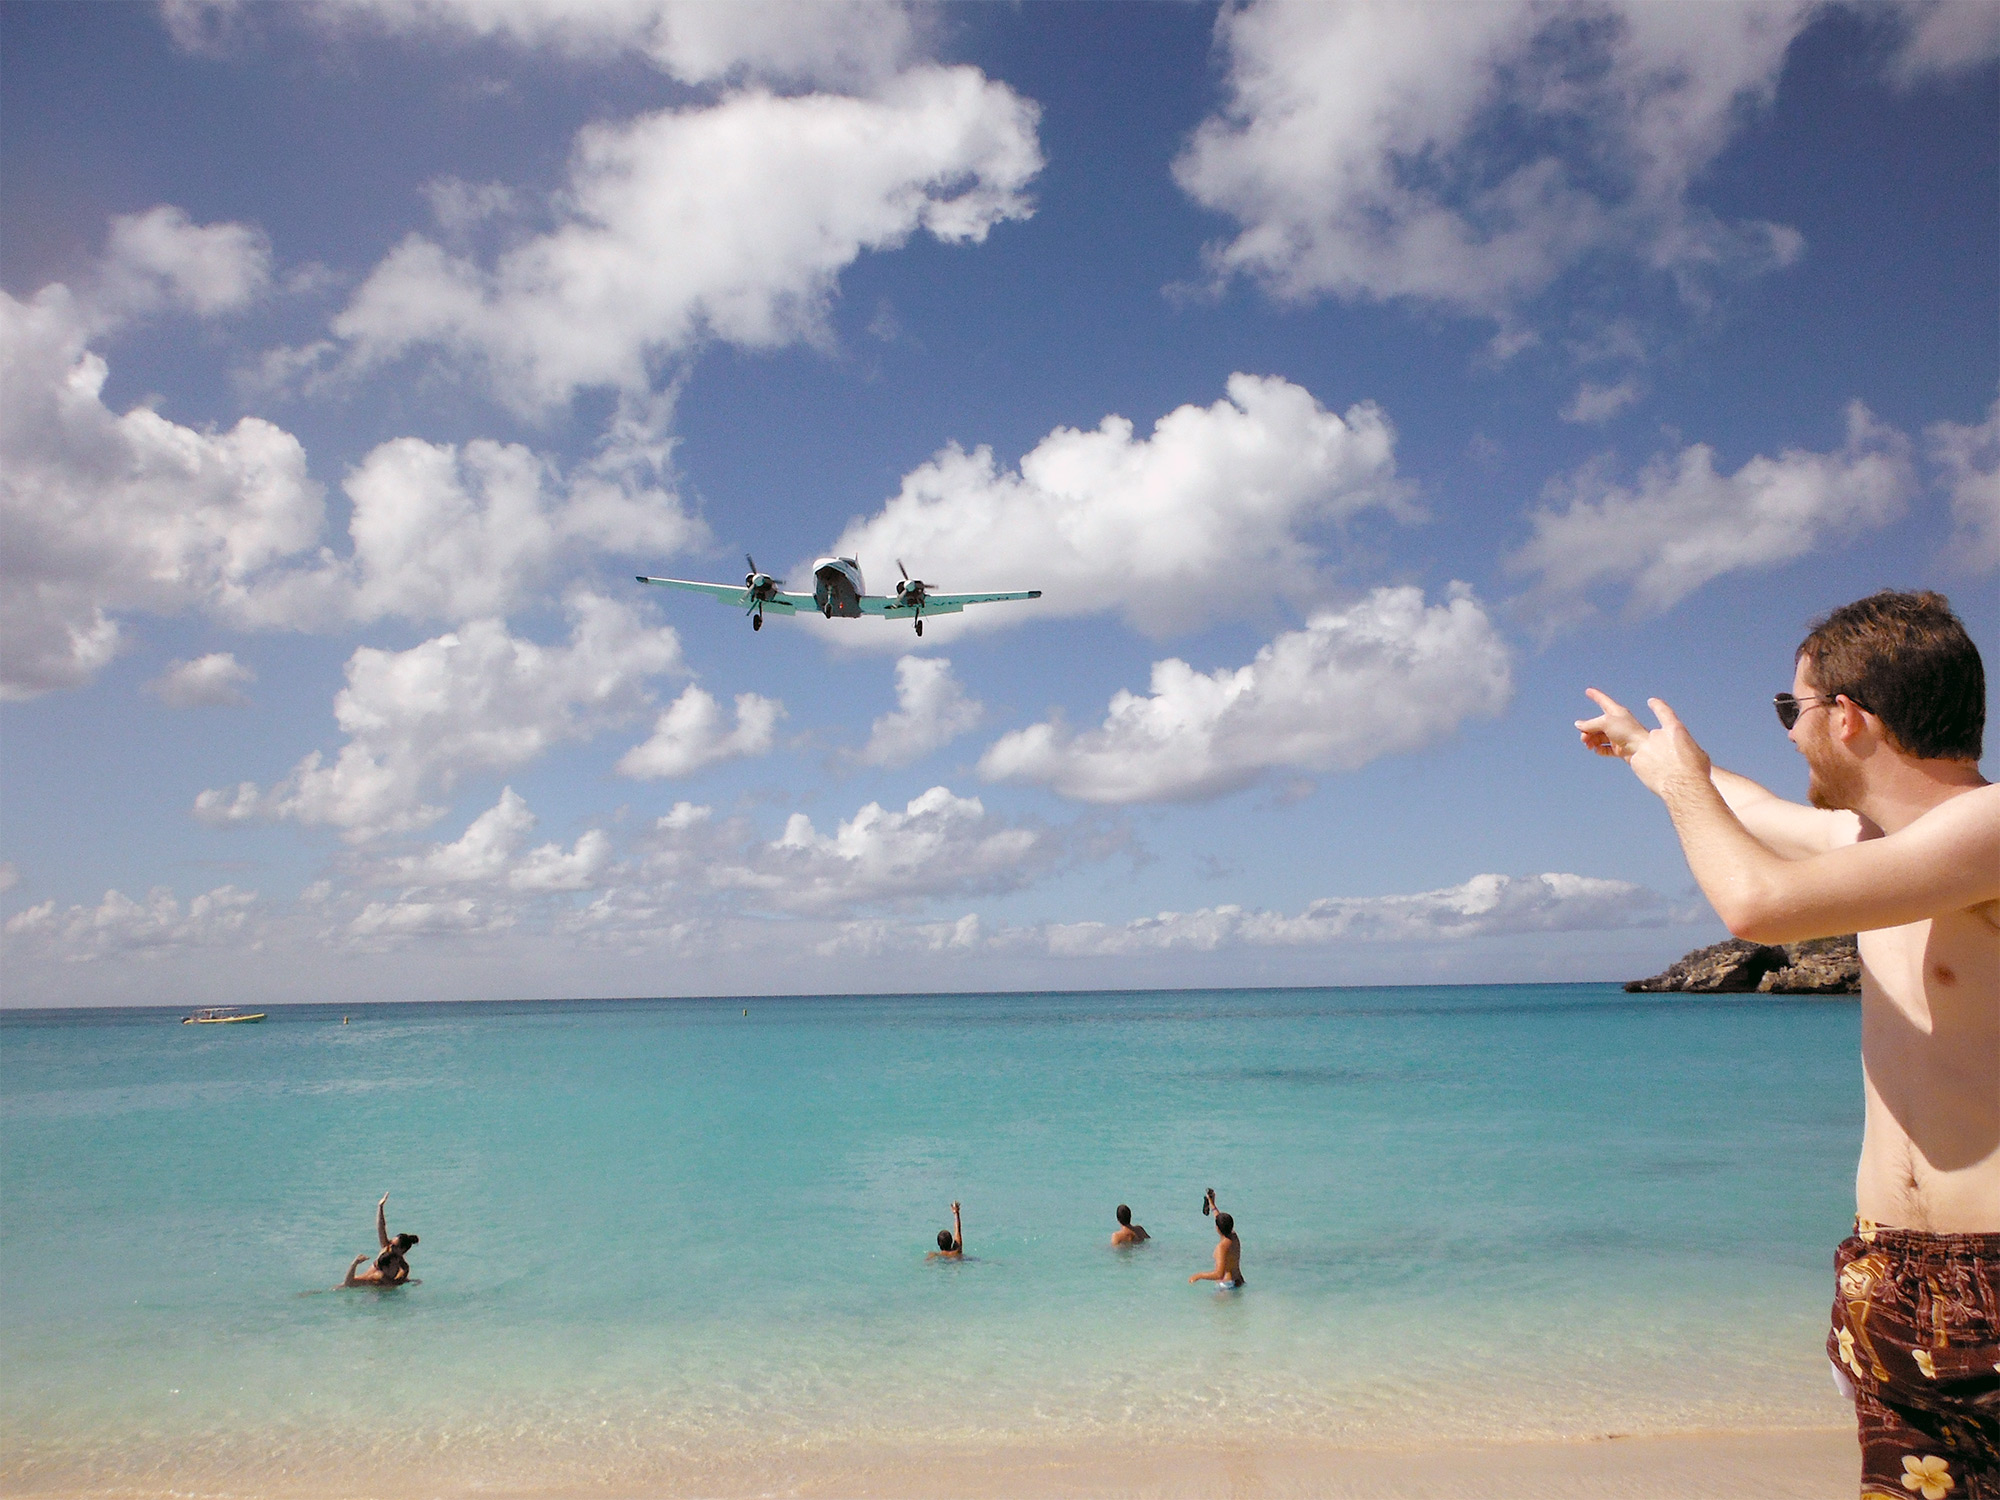 People swimming in the ocean, pointing up at an airplane flying overhead at Maho Beach in Sint Maarten